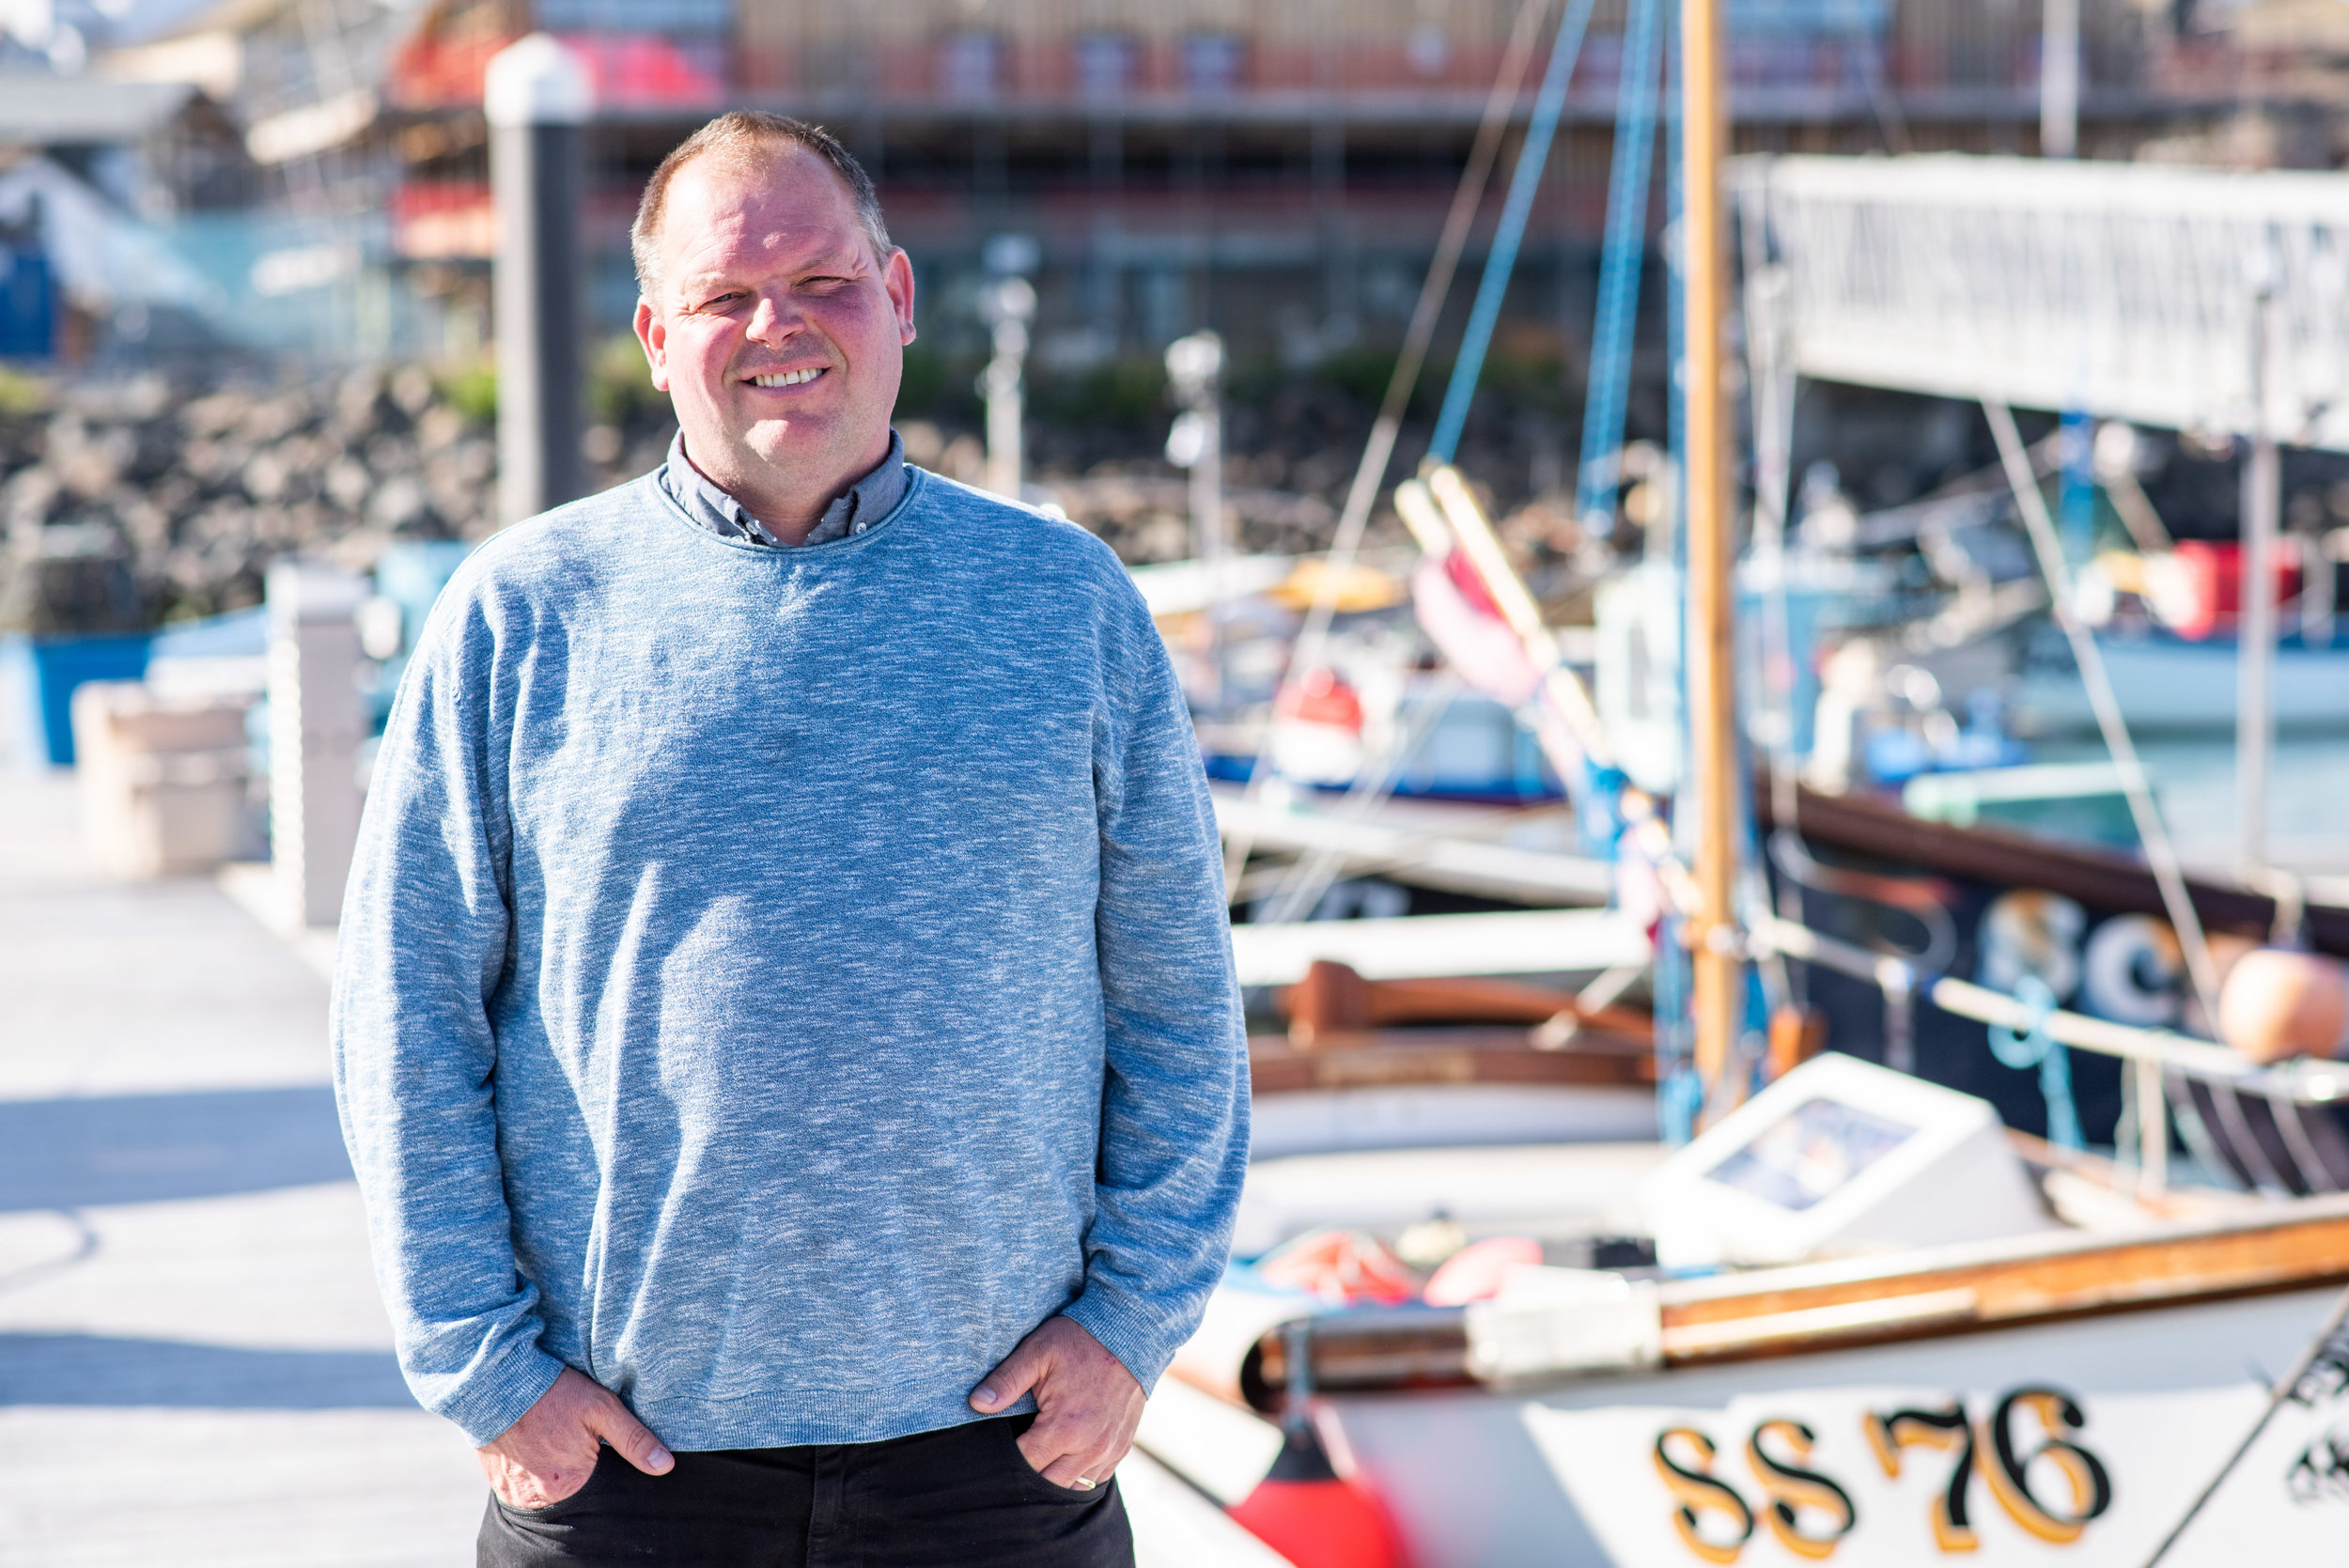 Meet Clive - Seafood Cornwall Training is running a new project working with fishermen on all aspects of sea safety. Clive Palfrey has joined the SCT Team as Safety Adviser to work closely with fishermen throughout Cornwall with the aim to improve safety knowledge and share good practice and solutions. Funding to deliver this project is thanks to Seafarers UK, and EU Funding through Cornwall & Isles of Scilly FLAG.Find out more here.